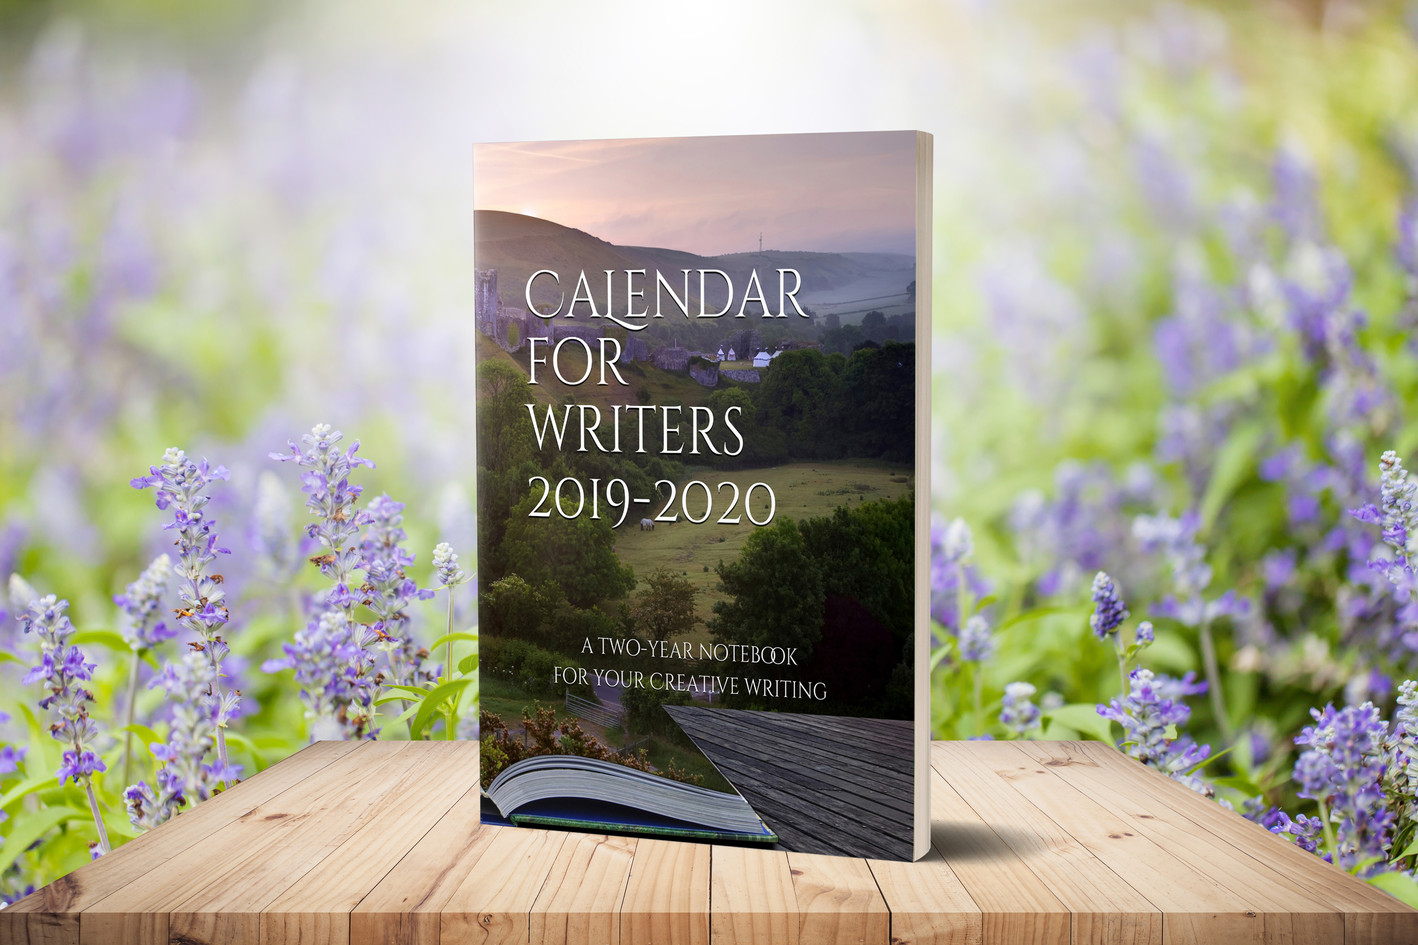 The Calendar For Writers 2019-2020 Amazon Edition.jpg